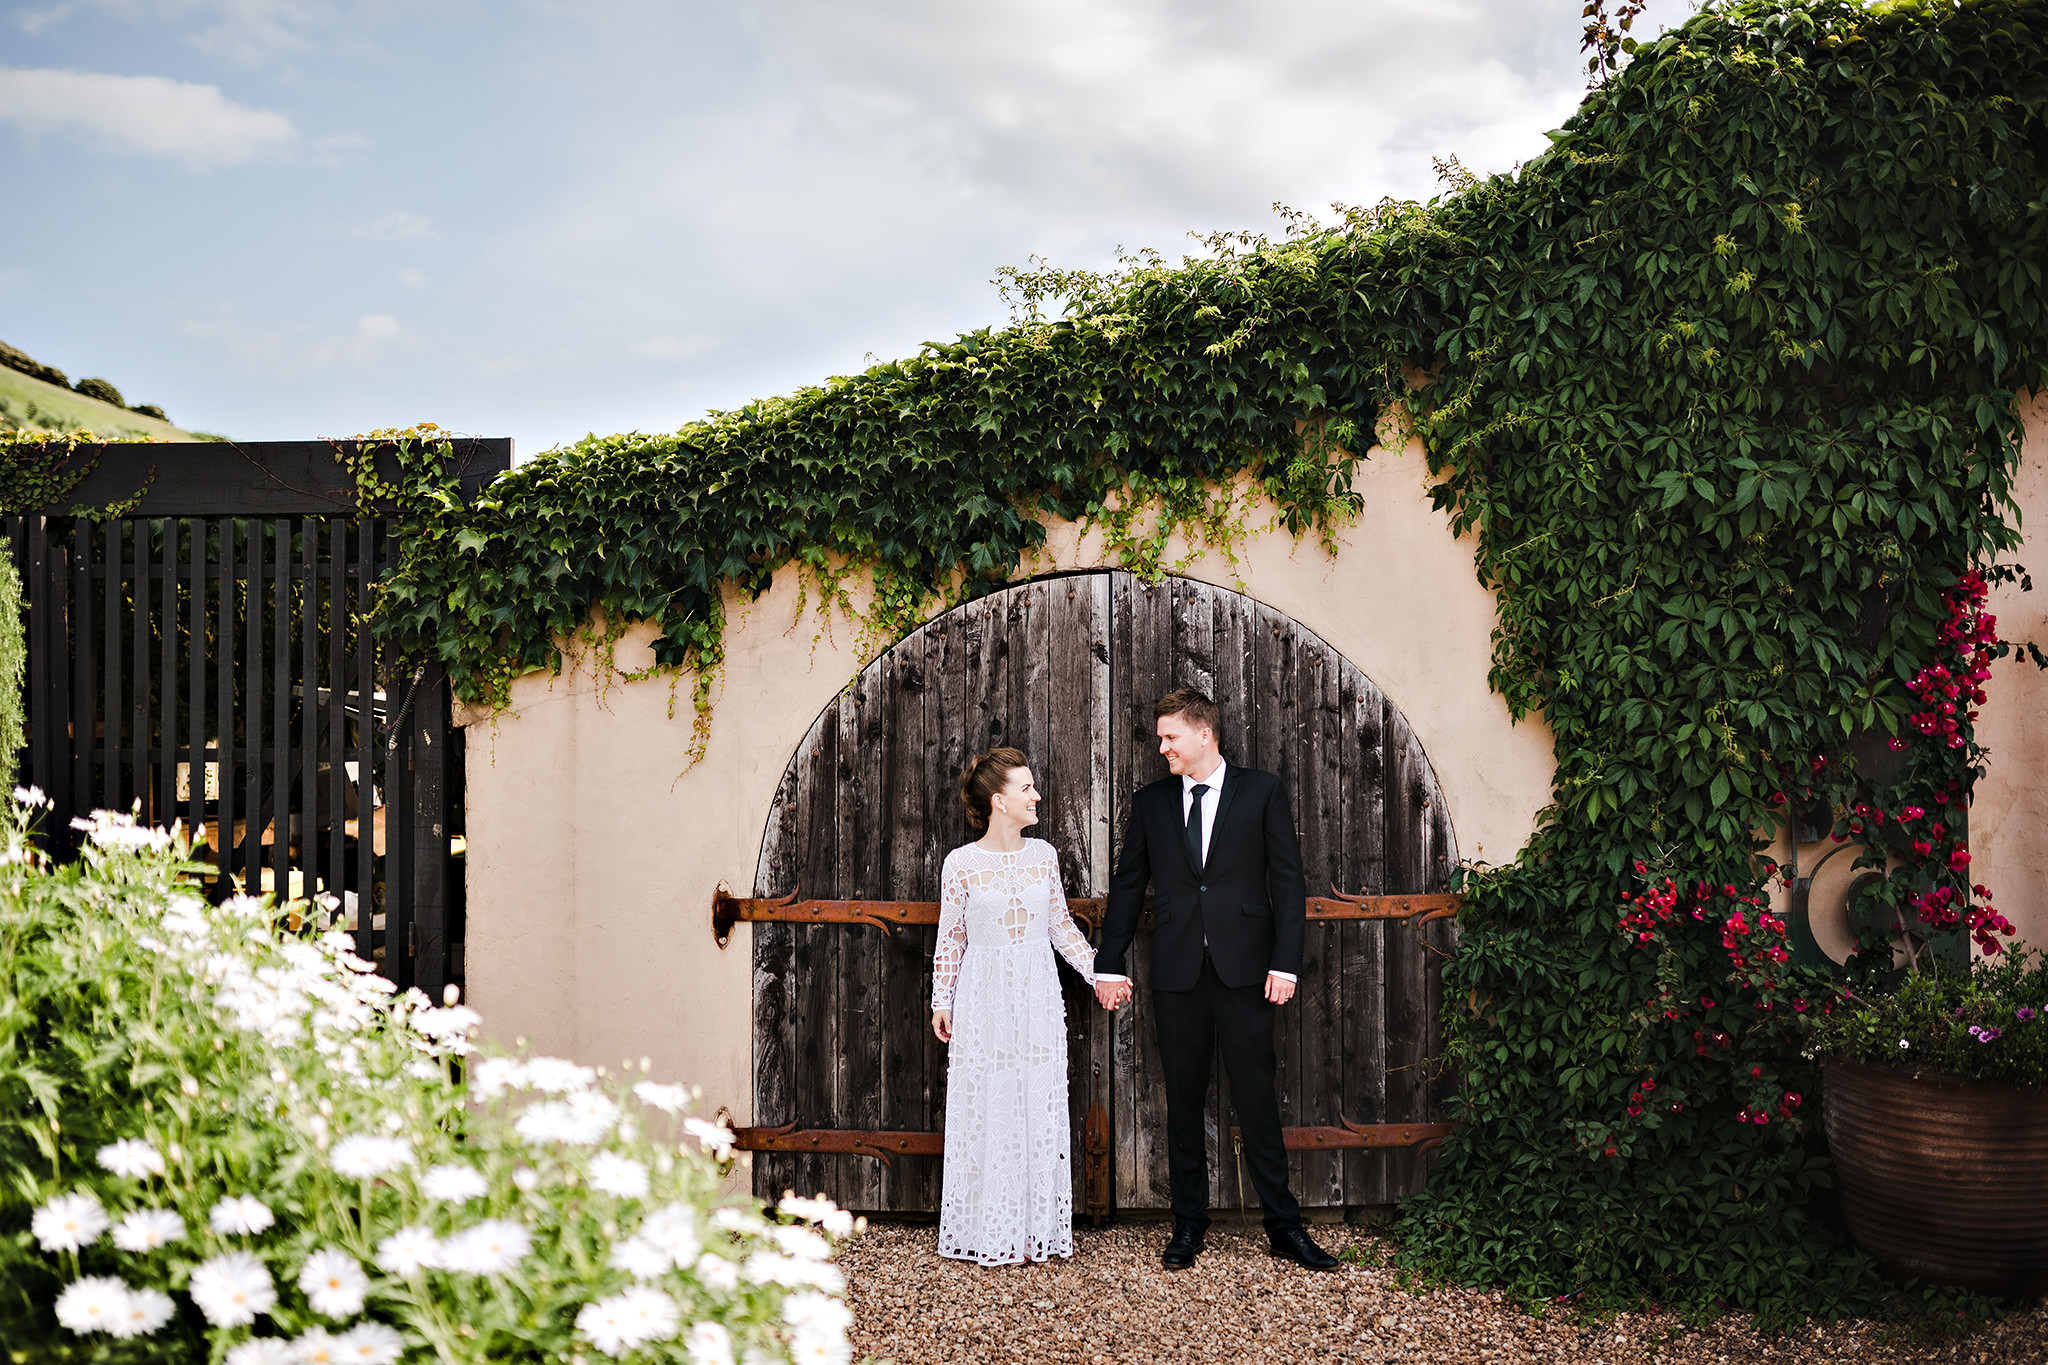 39 waiheke island bride with rad dress in front of barn doors.JPG